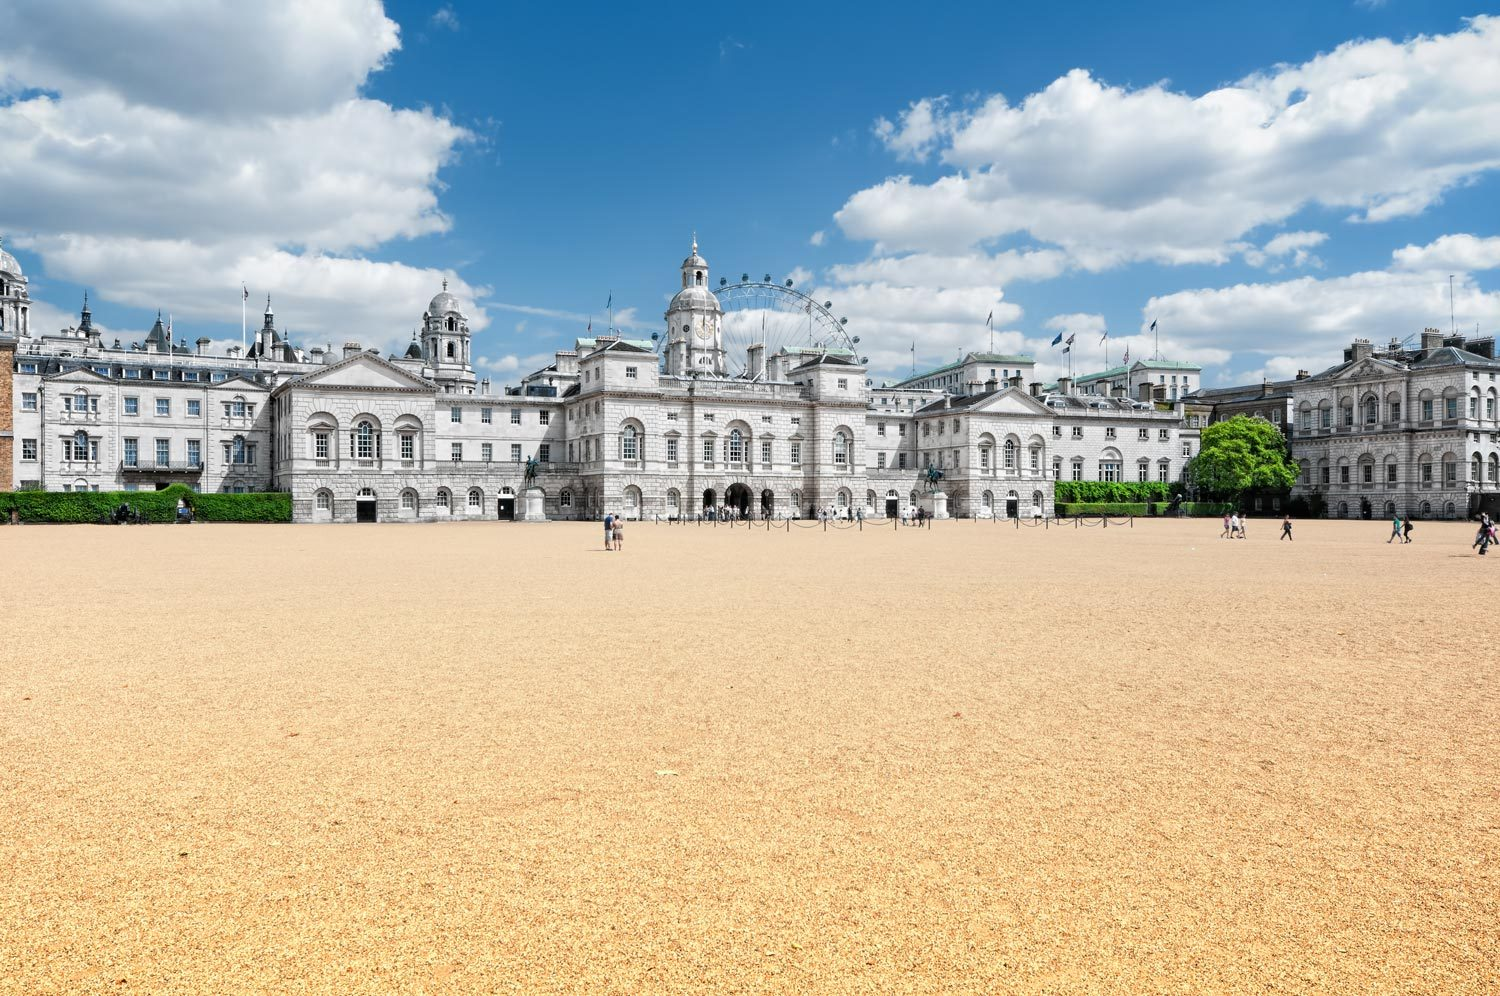 Horse Guards Parade, with the London Eye in the background.